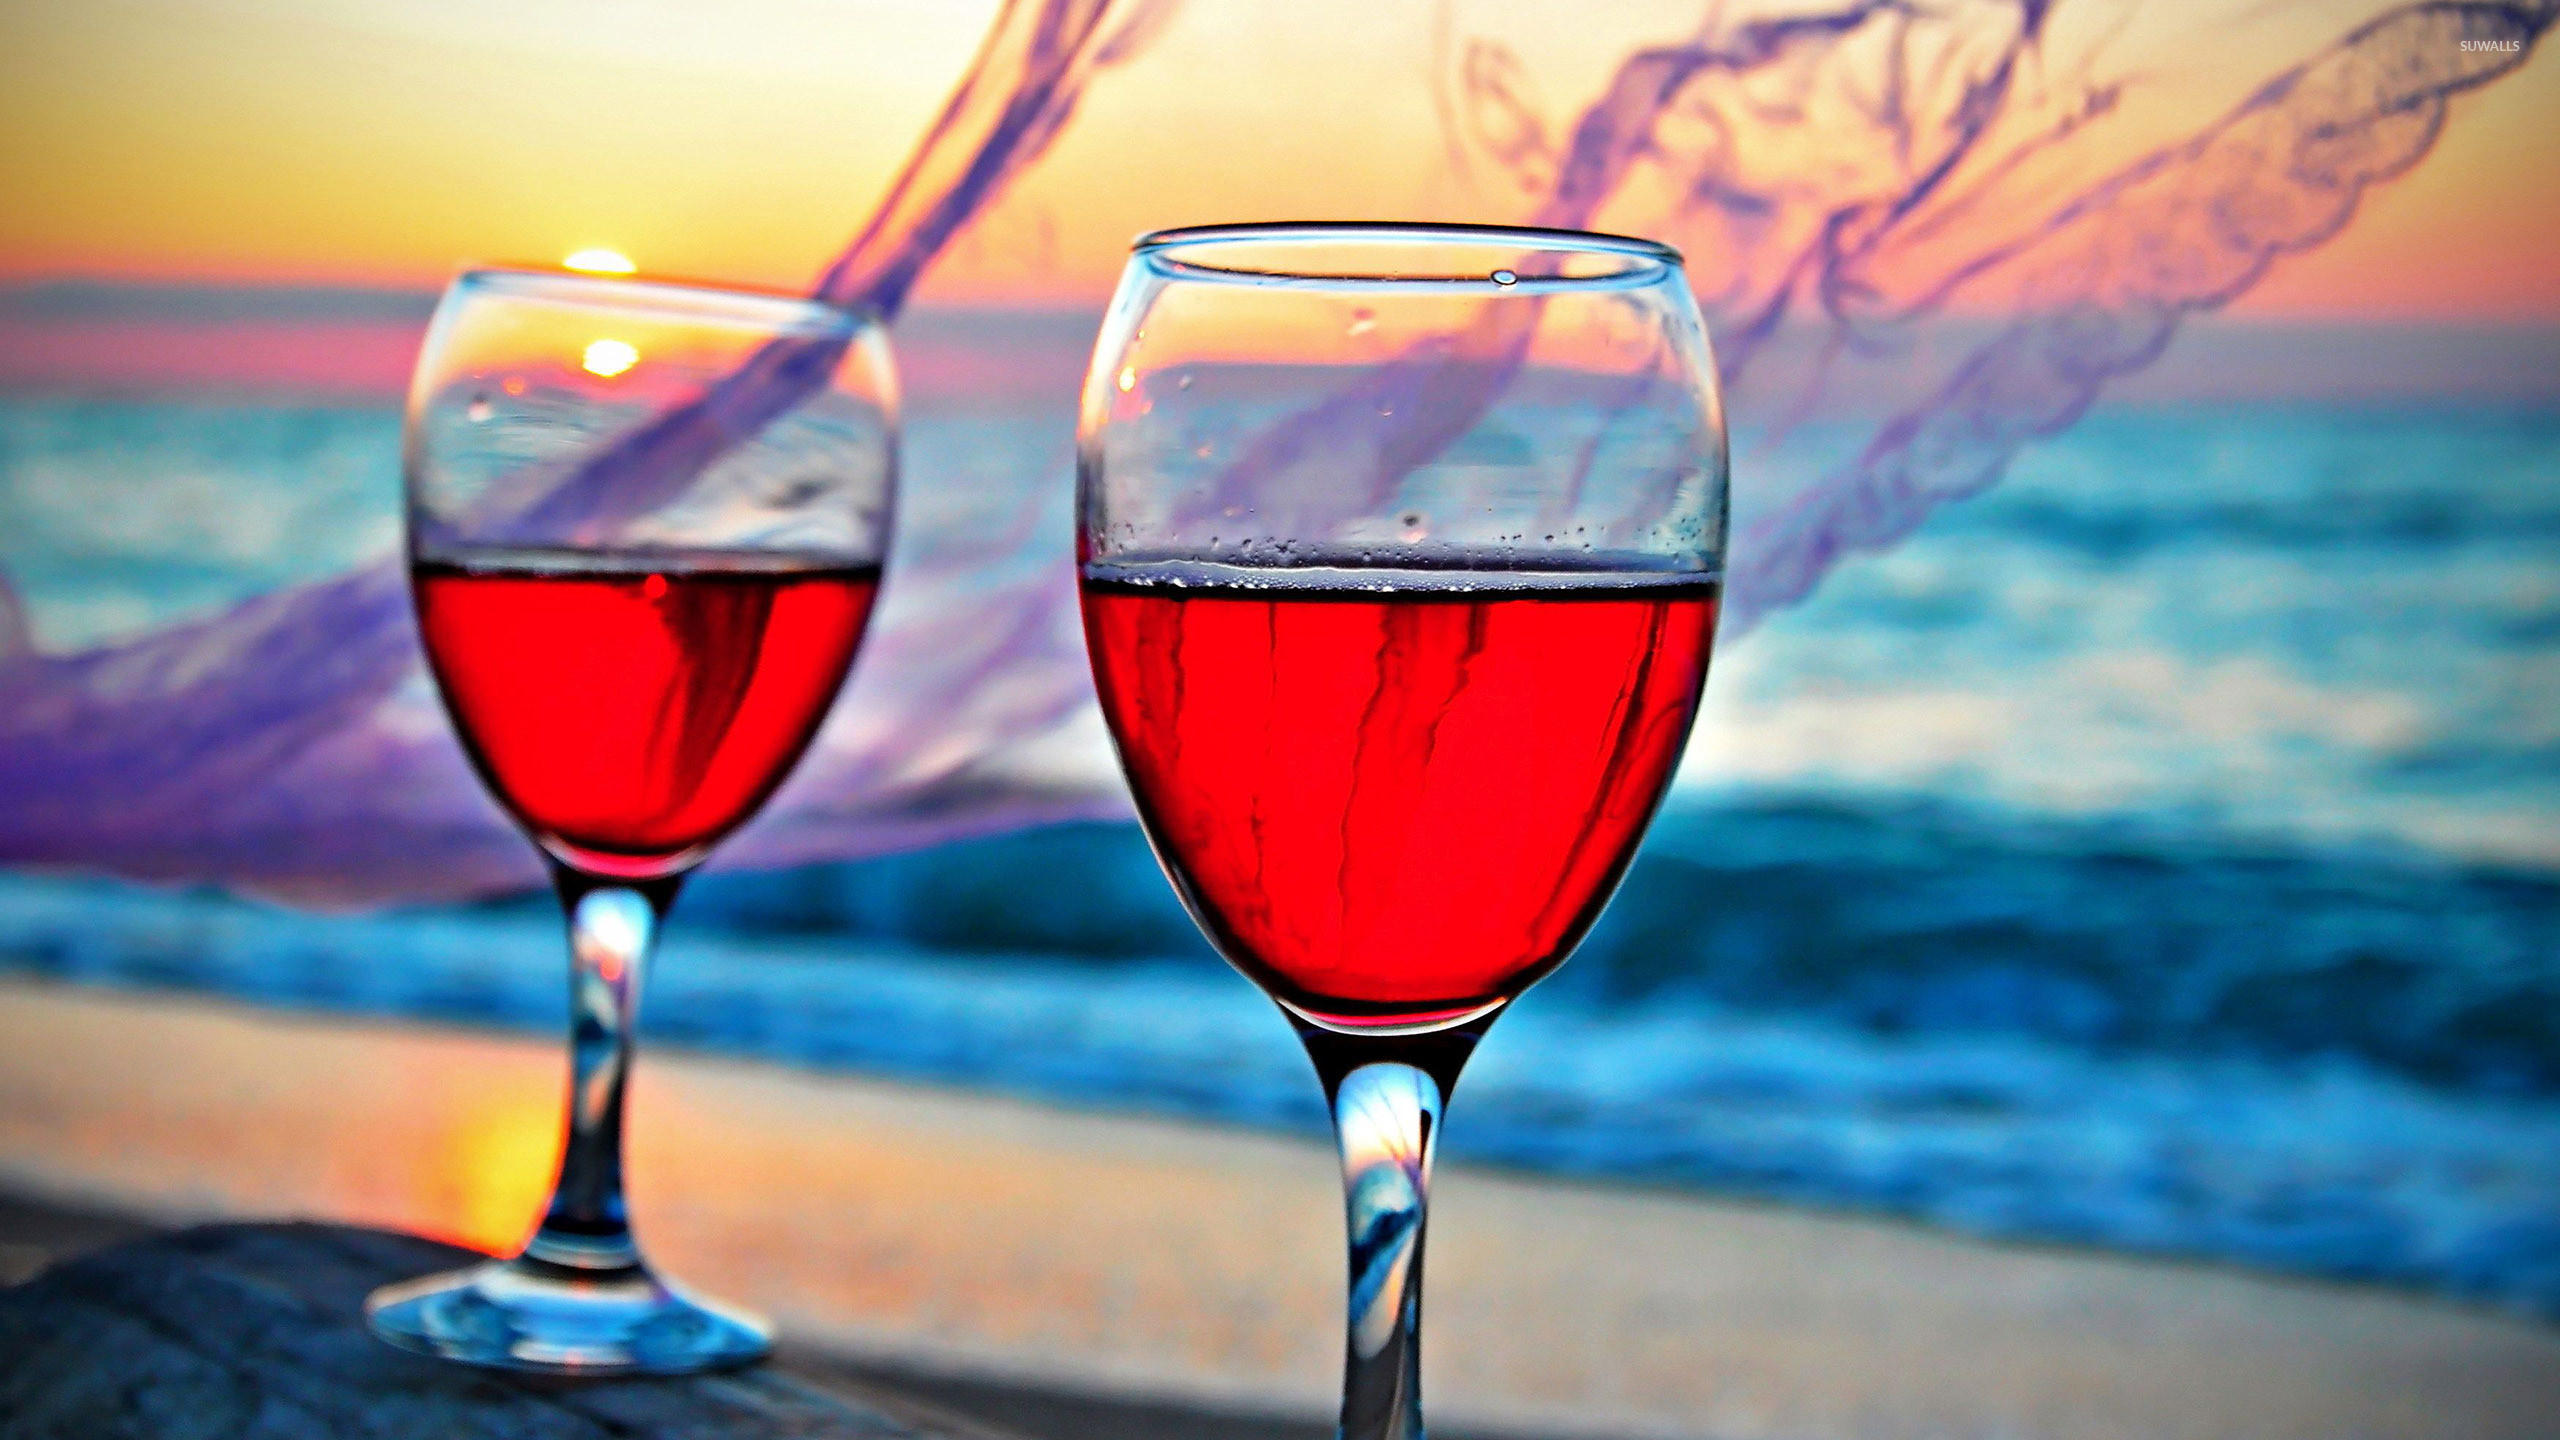 Res: 2560x1440, Rose wine in the glasses wallpaper